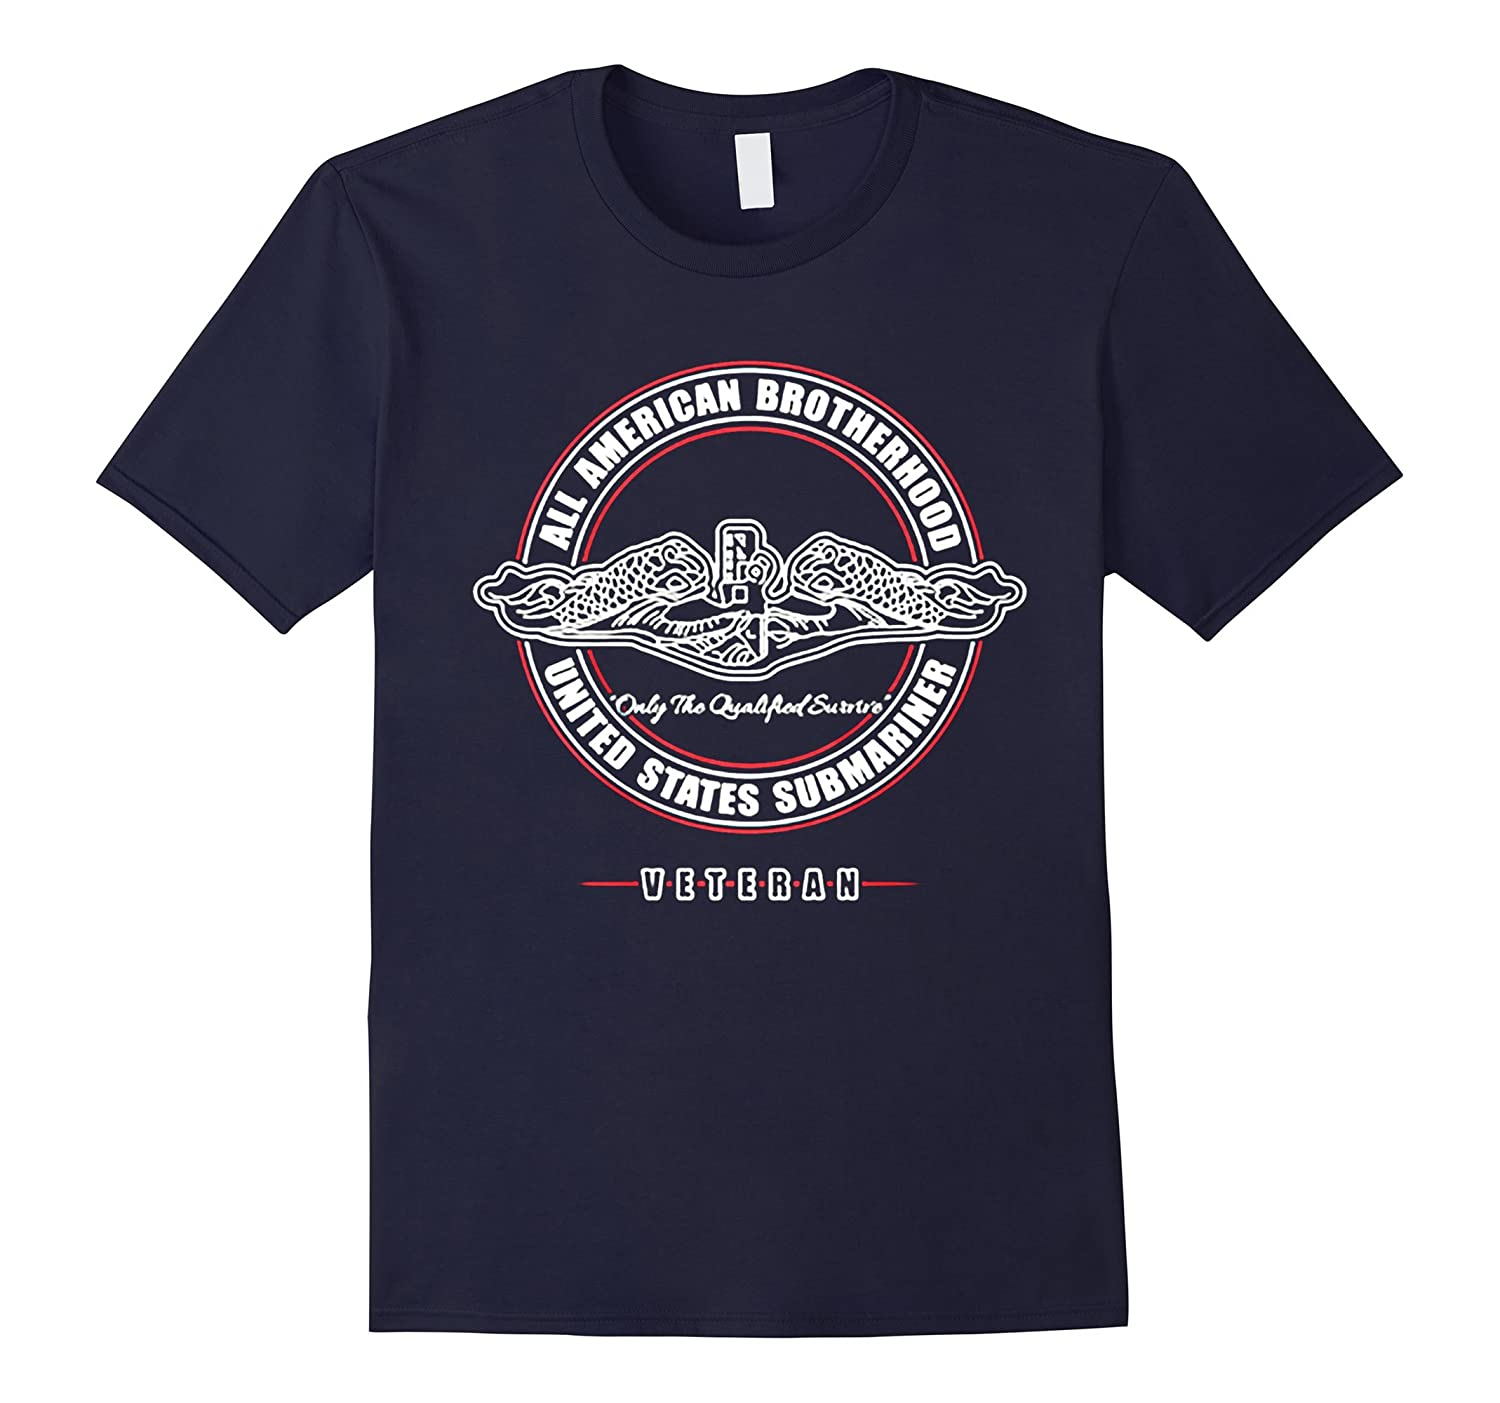 US Submariner - All American Brotherhood Tshirt-Vaci